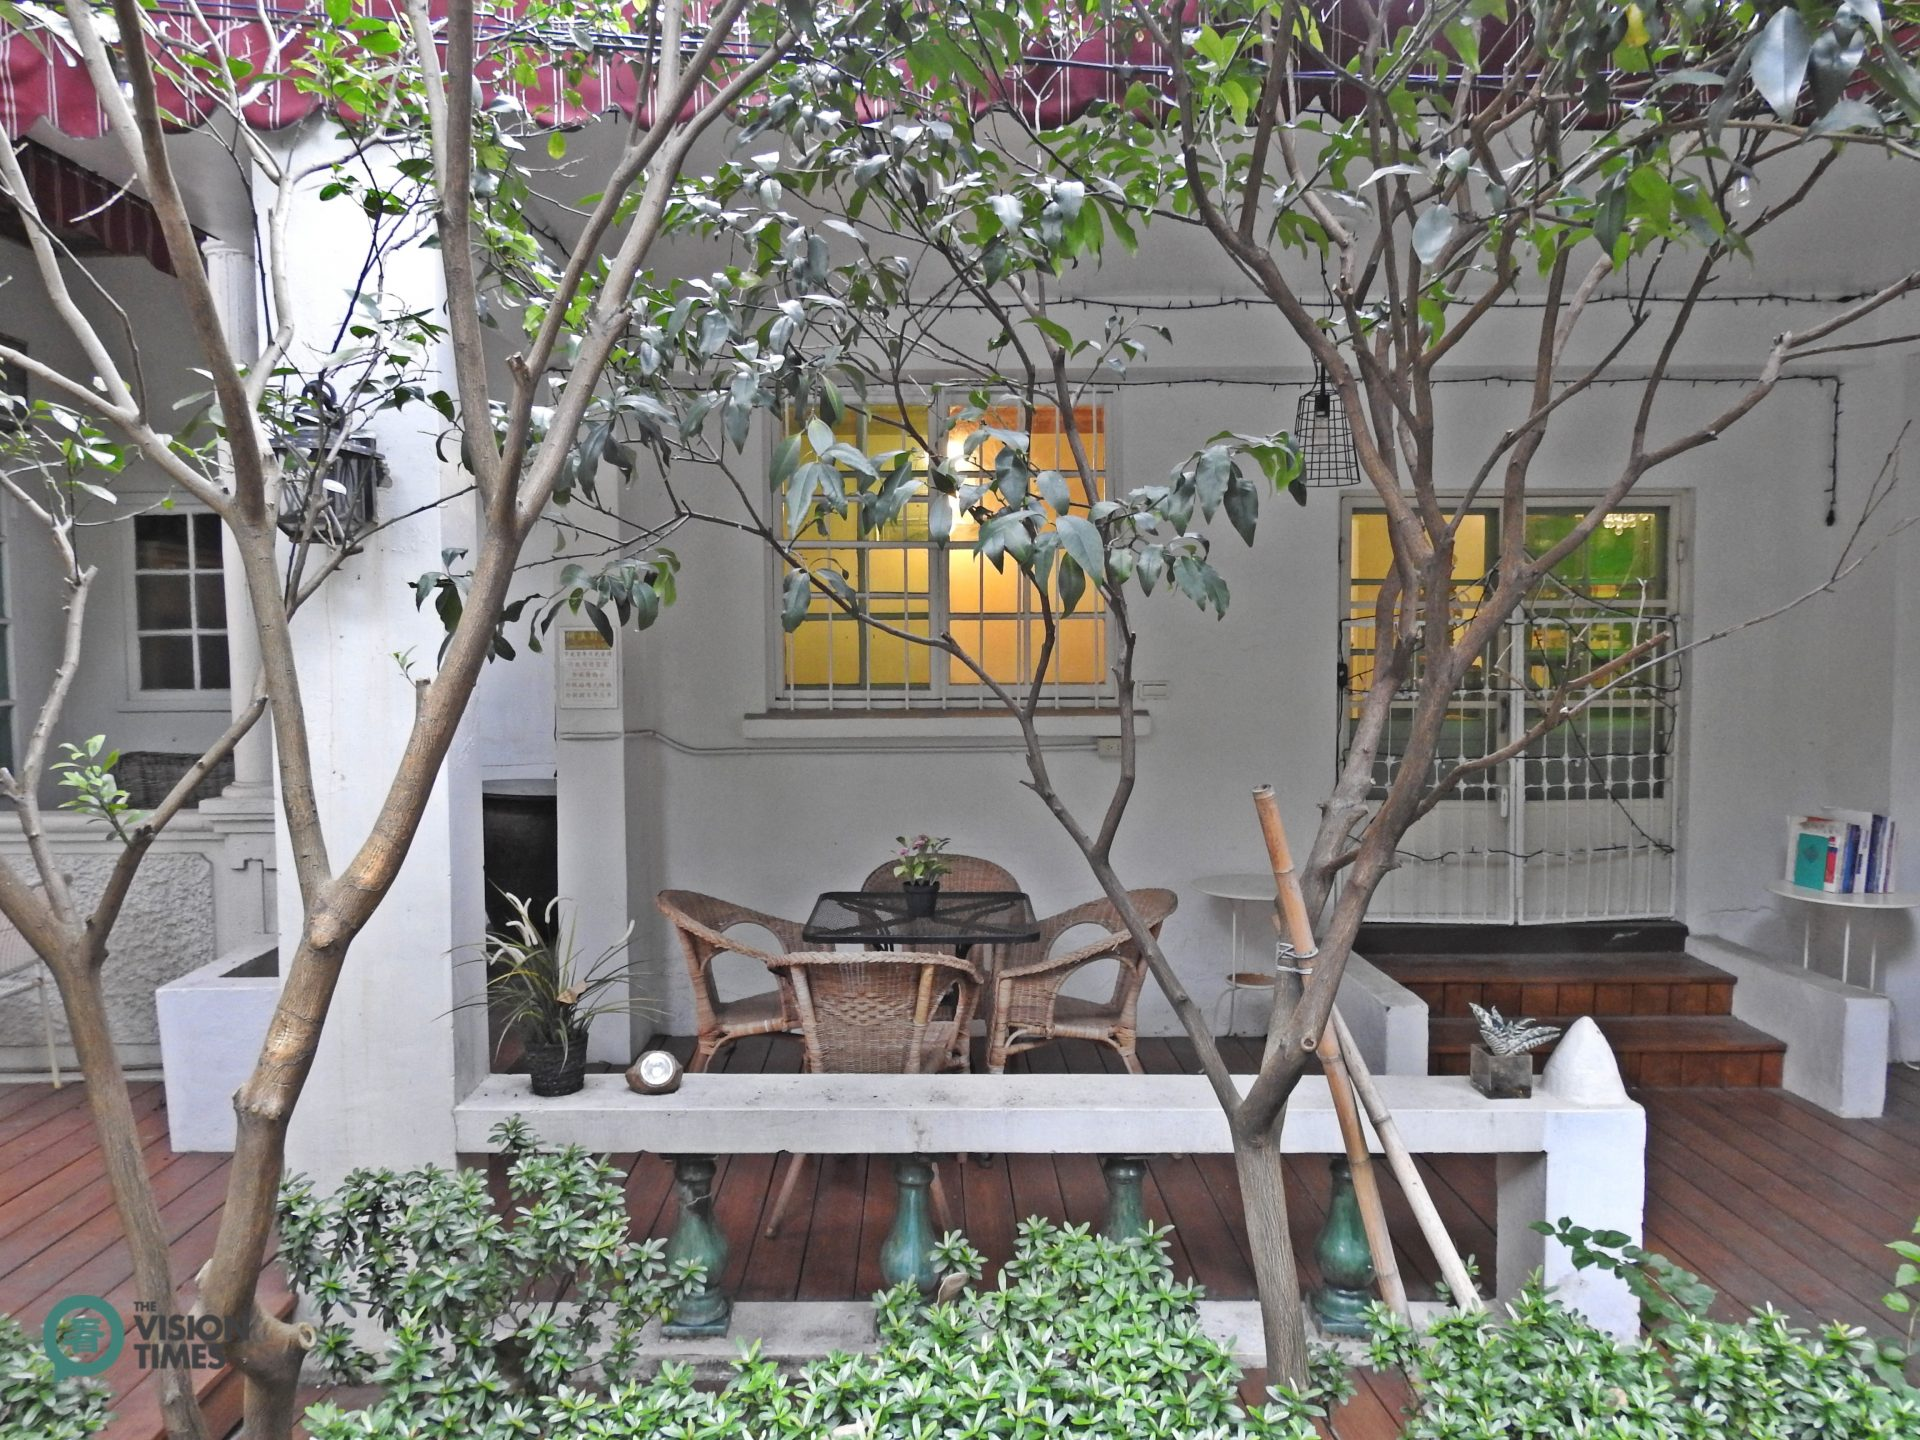 The Japan style house where the artist was born and his atelier was located. (Image: Billy Shyu / Vision Times)